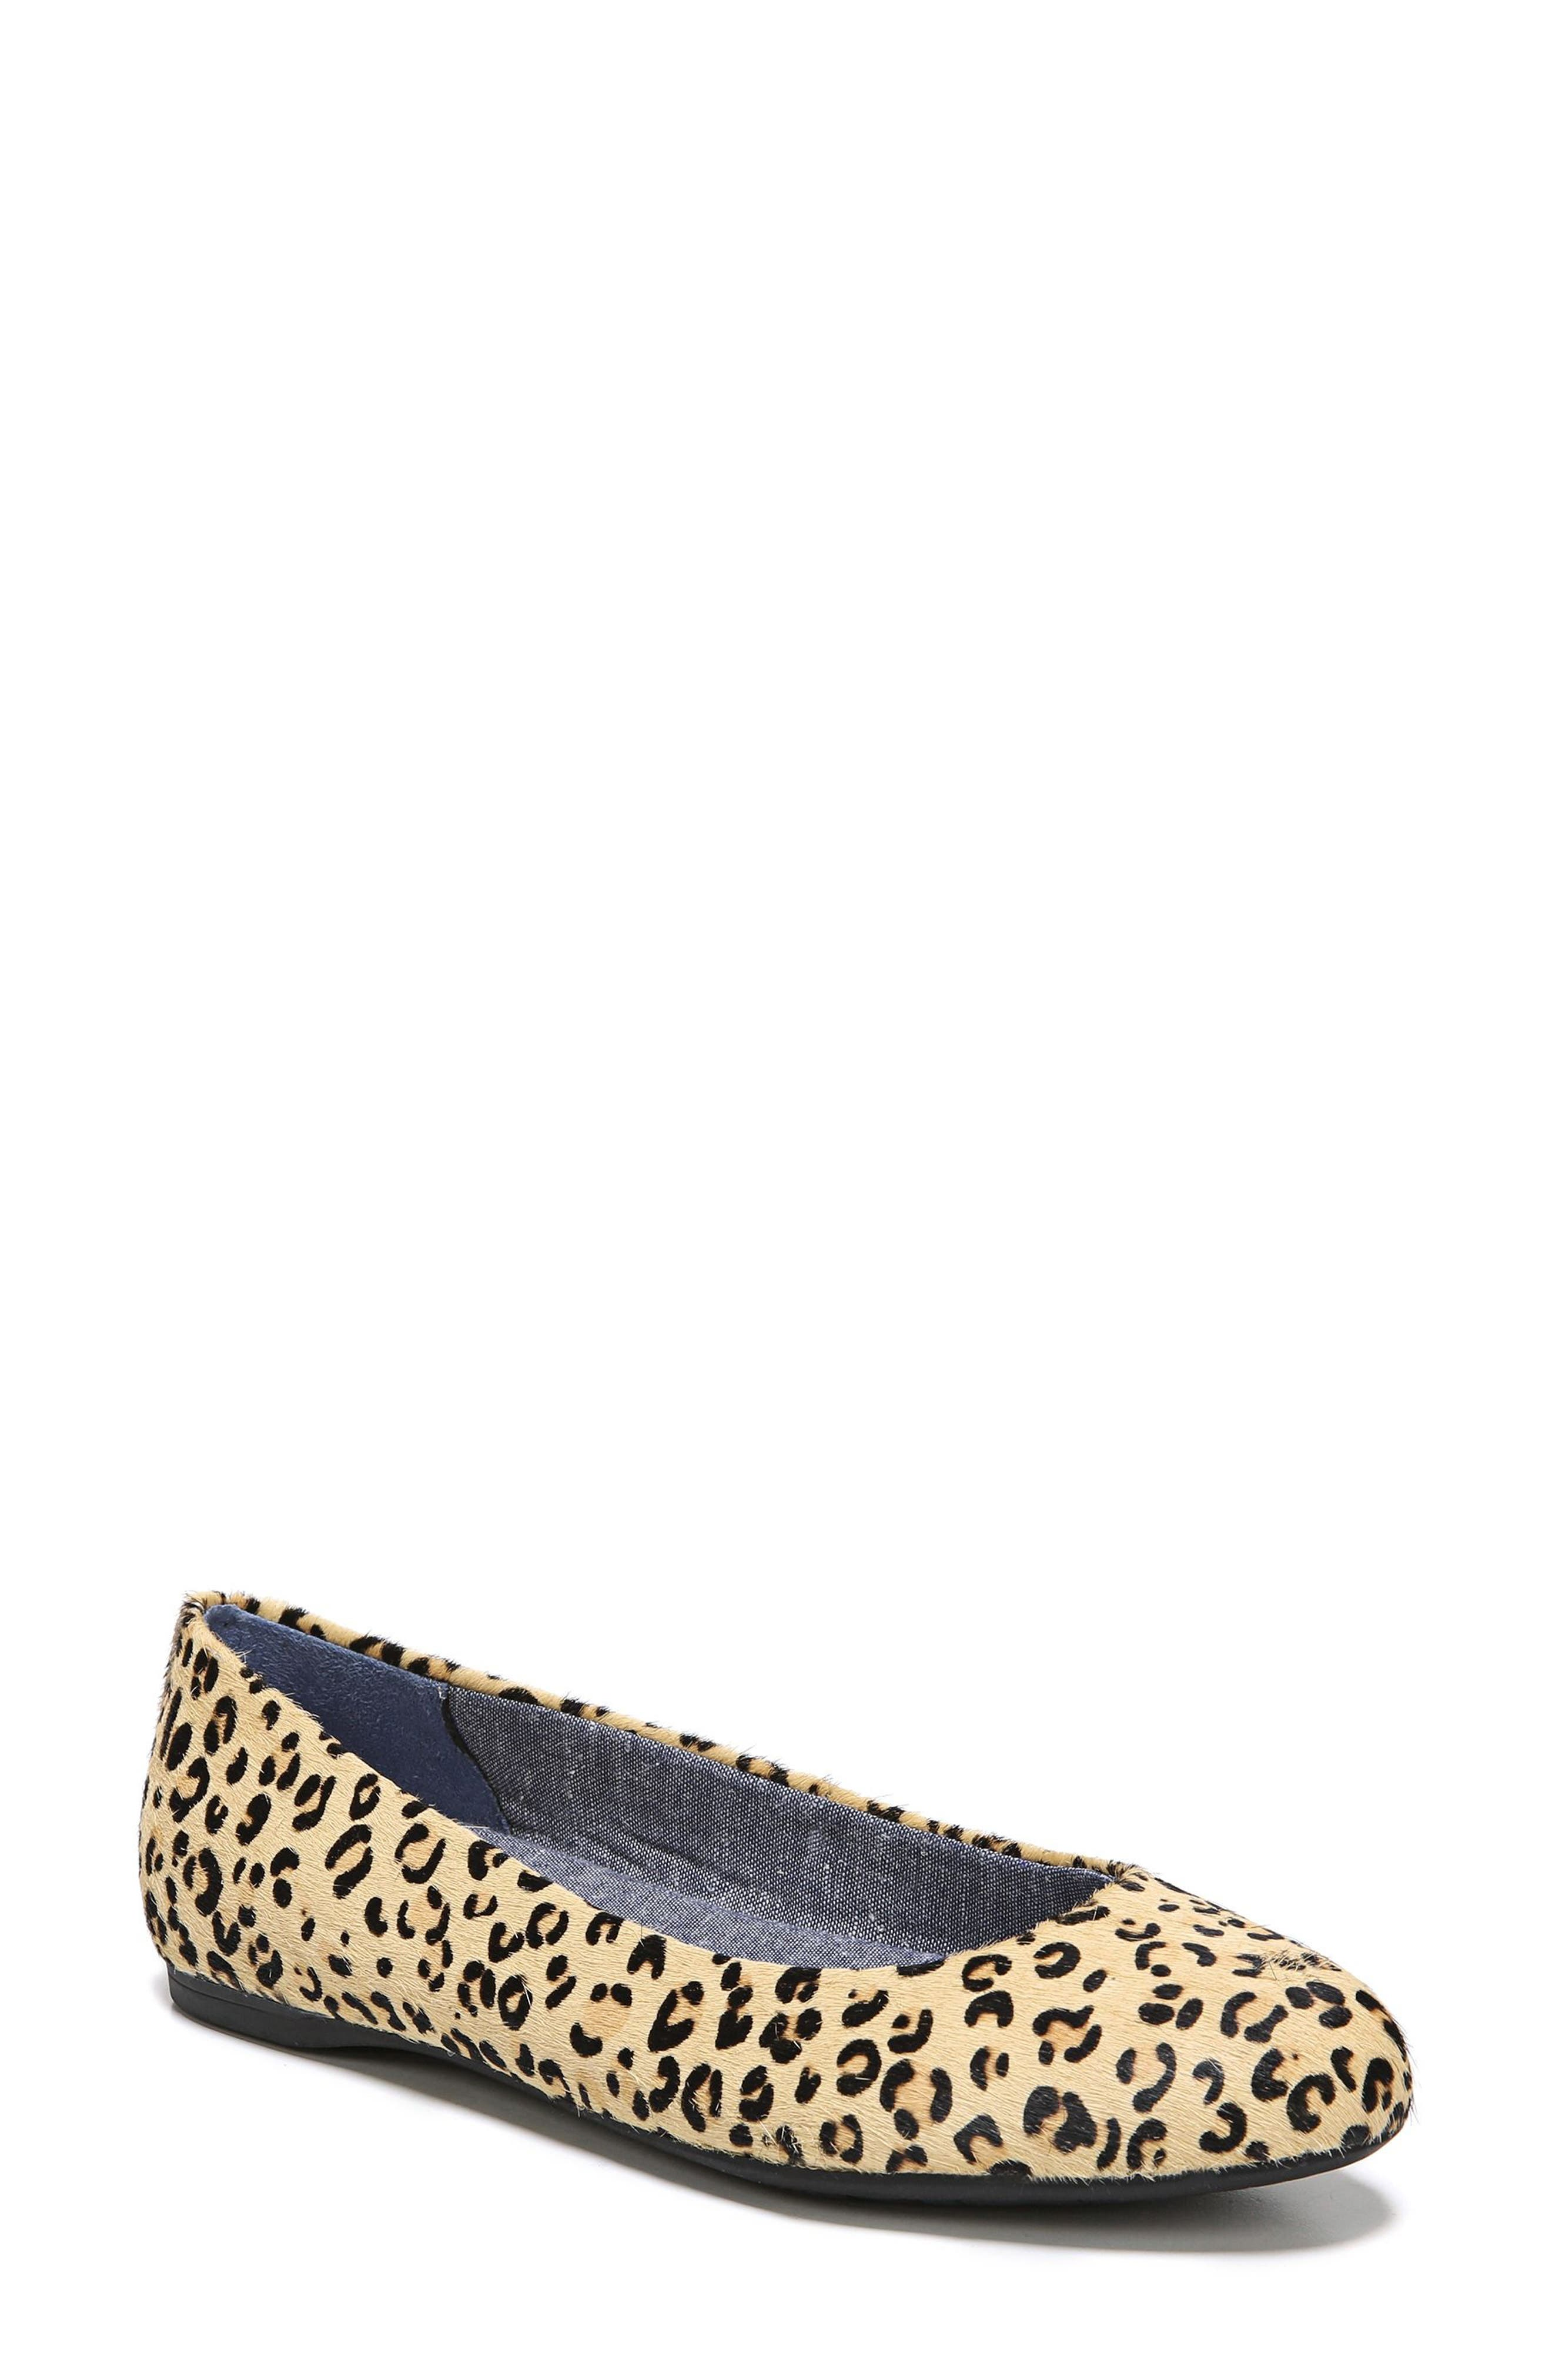 ,                             Giorgie Flat,                             Main thumbnail 1, color,                             BLACK LEOPARD CALF HAIR